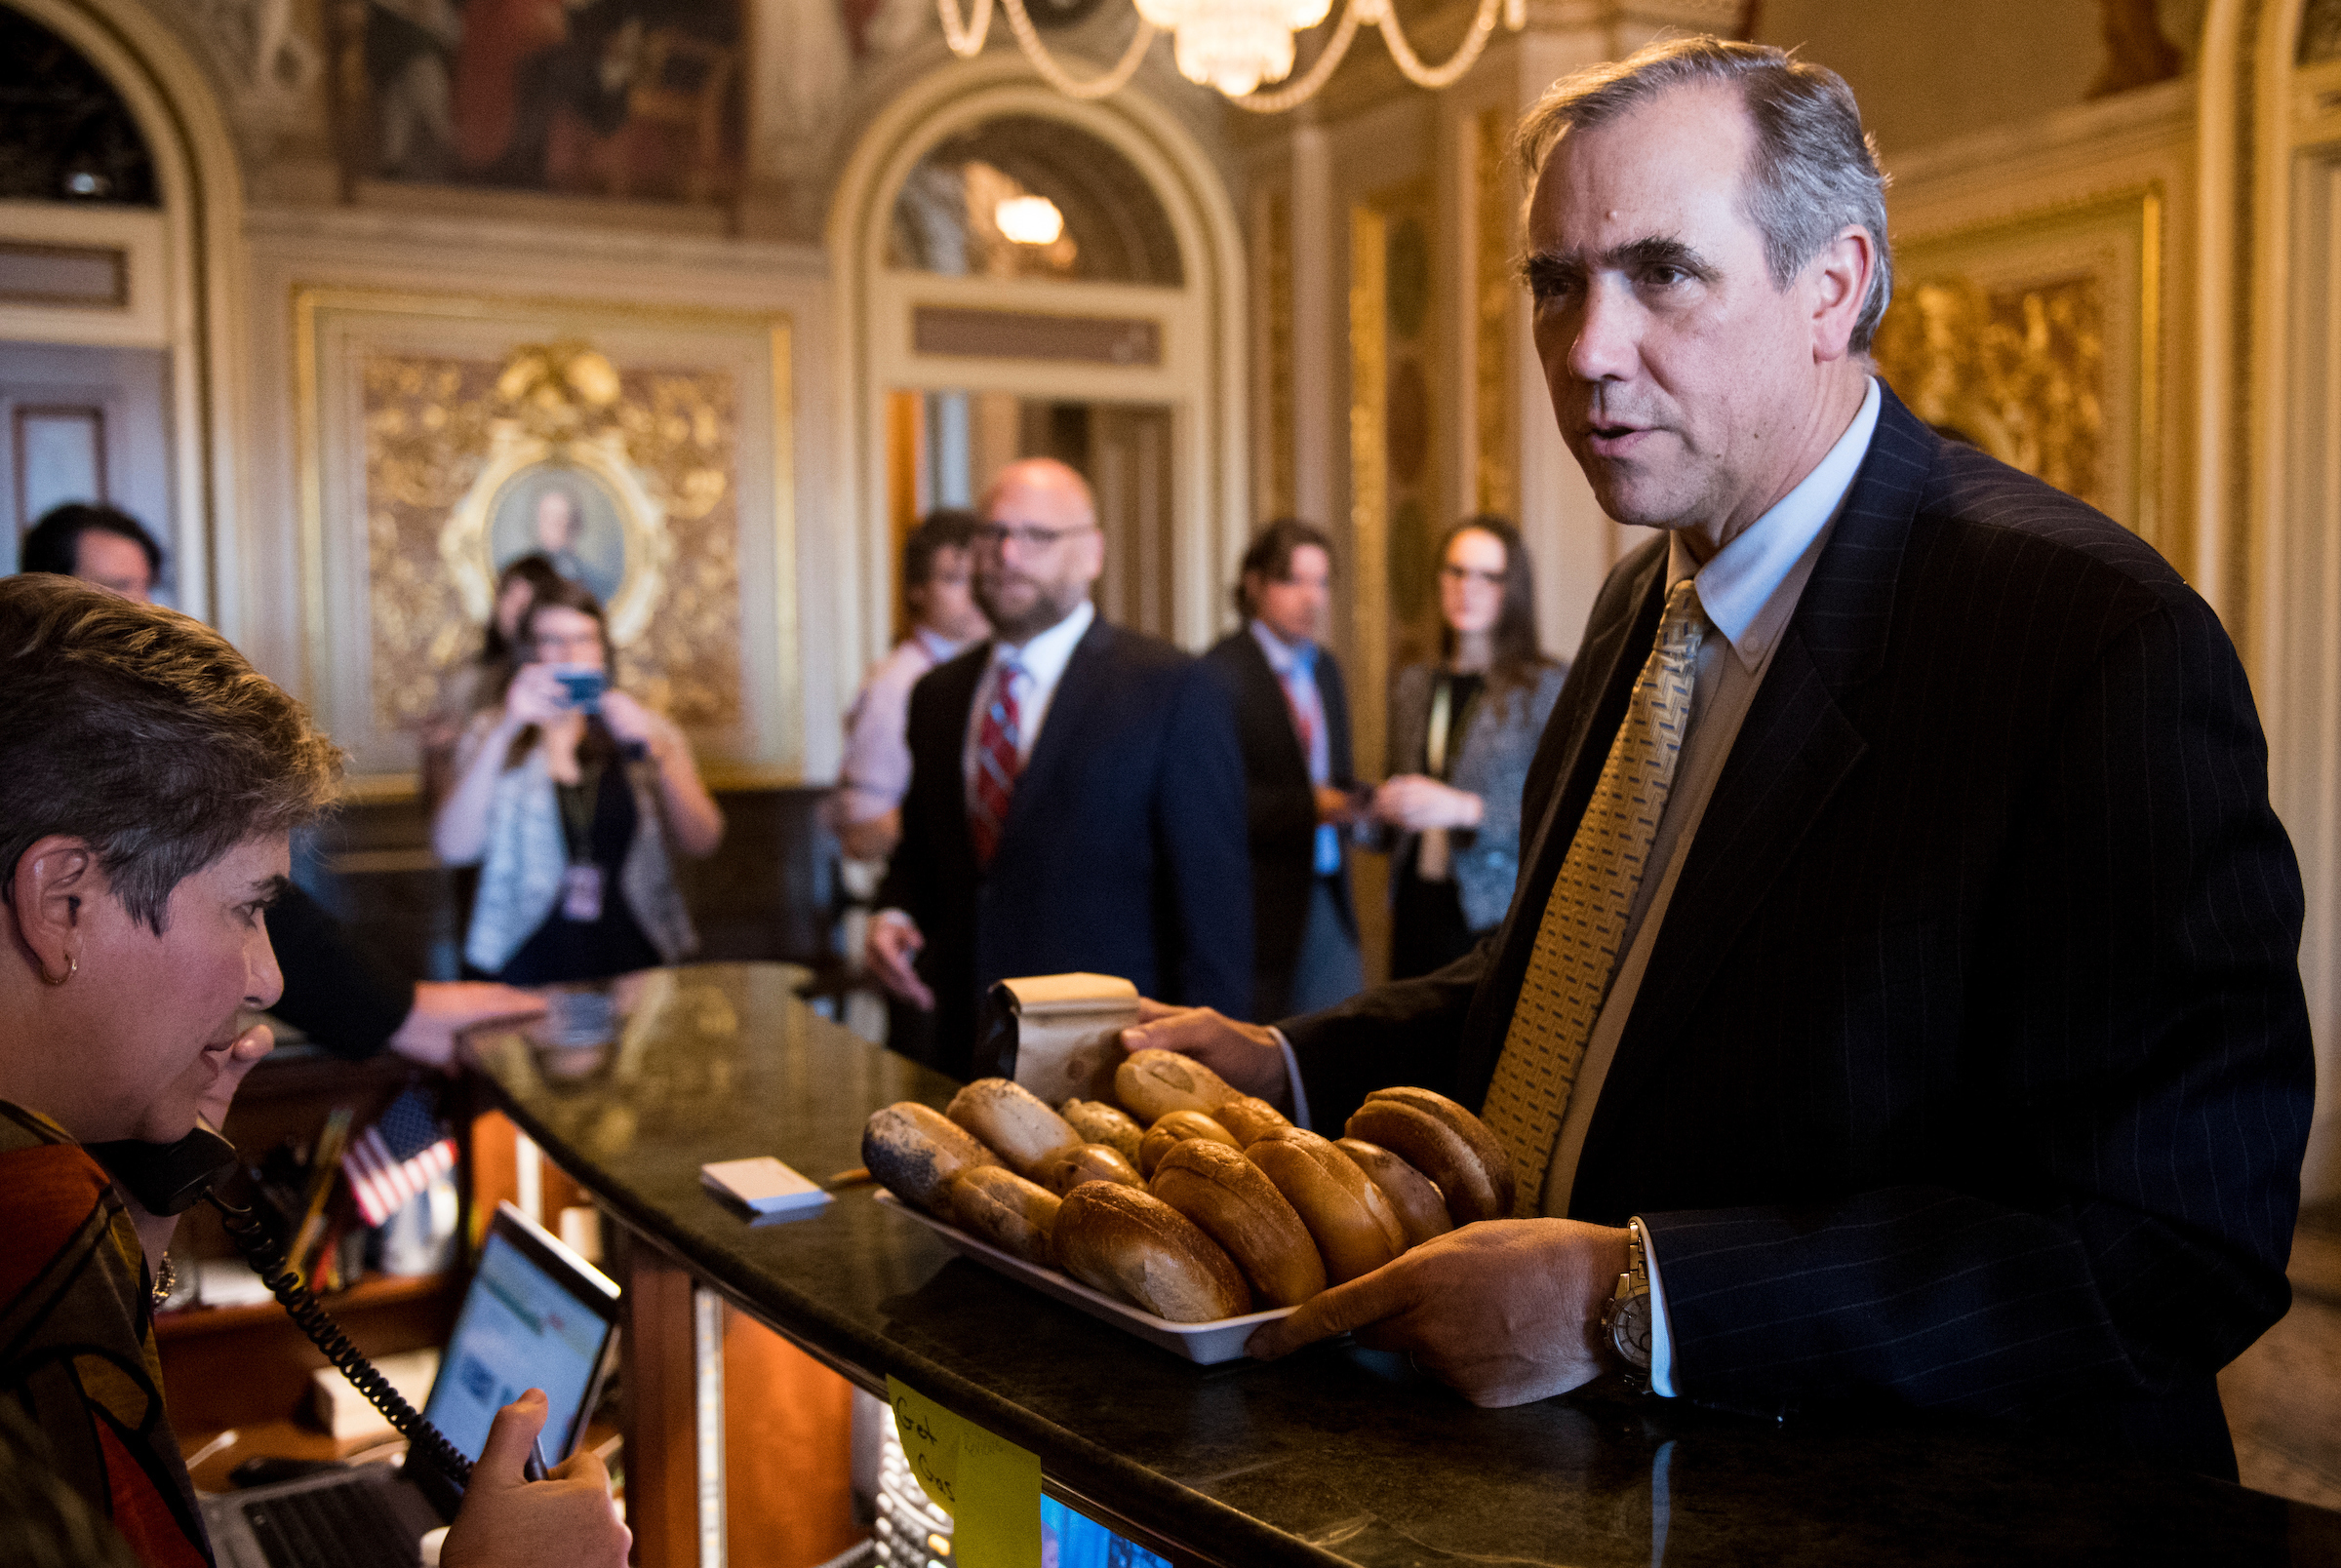 "Oregon Sen. <a class=""memberLink"" title=""Click to view member info in a new window"" href=""http://data.rollcall.com/members/28565?rel=memberLink"" target=""_blank"">Jeff Merkley</a> wrapped up his marathon floor speech Wednesday morning after more than 15 hours. He then distributed bagels and muffins to Senate staff following the all-nighter. (Bill Clark/CQ Roll Call)"